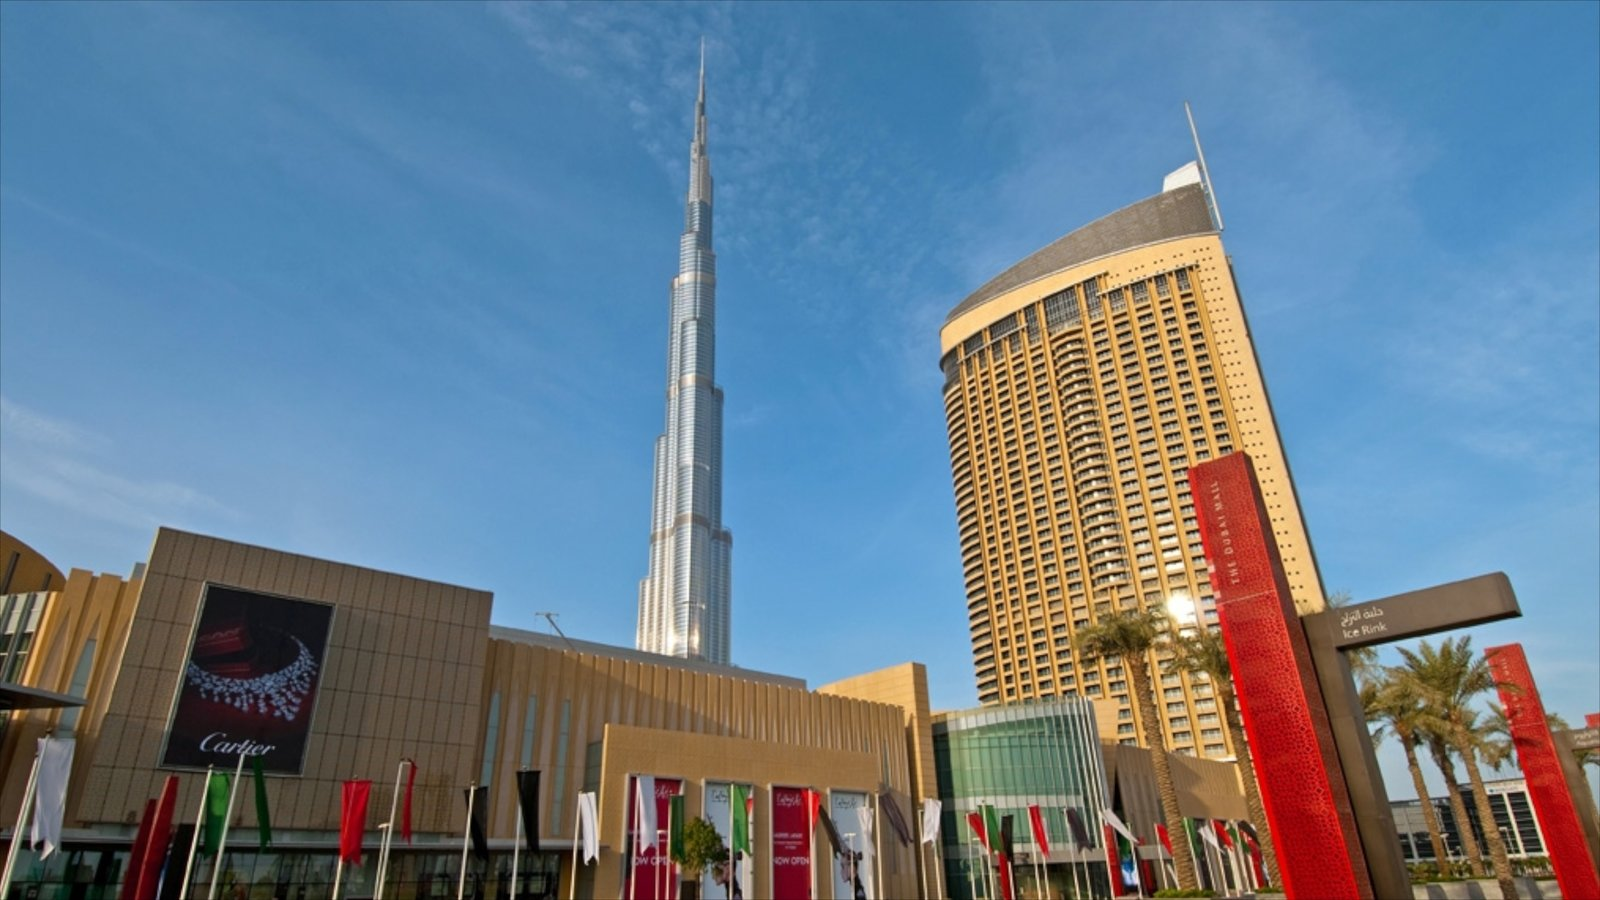 Dubai Mall showing street scenes and a city